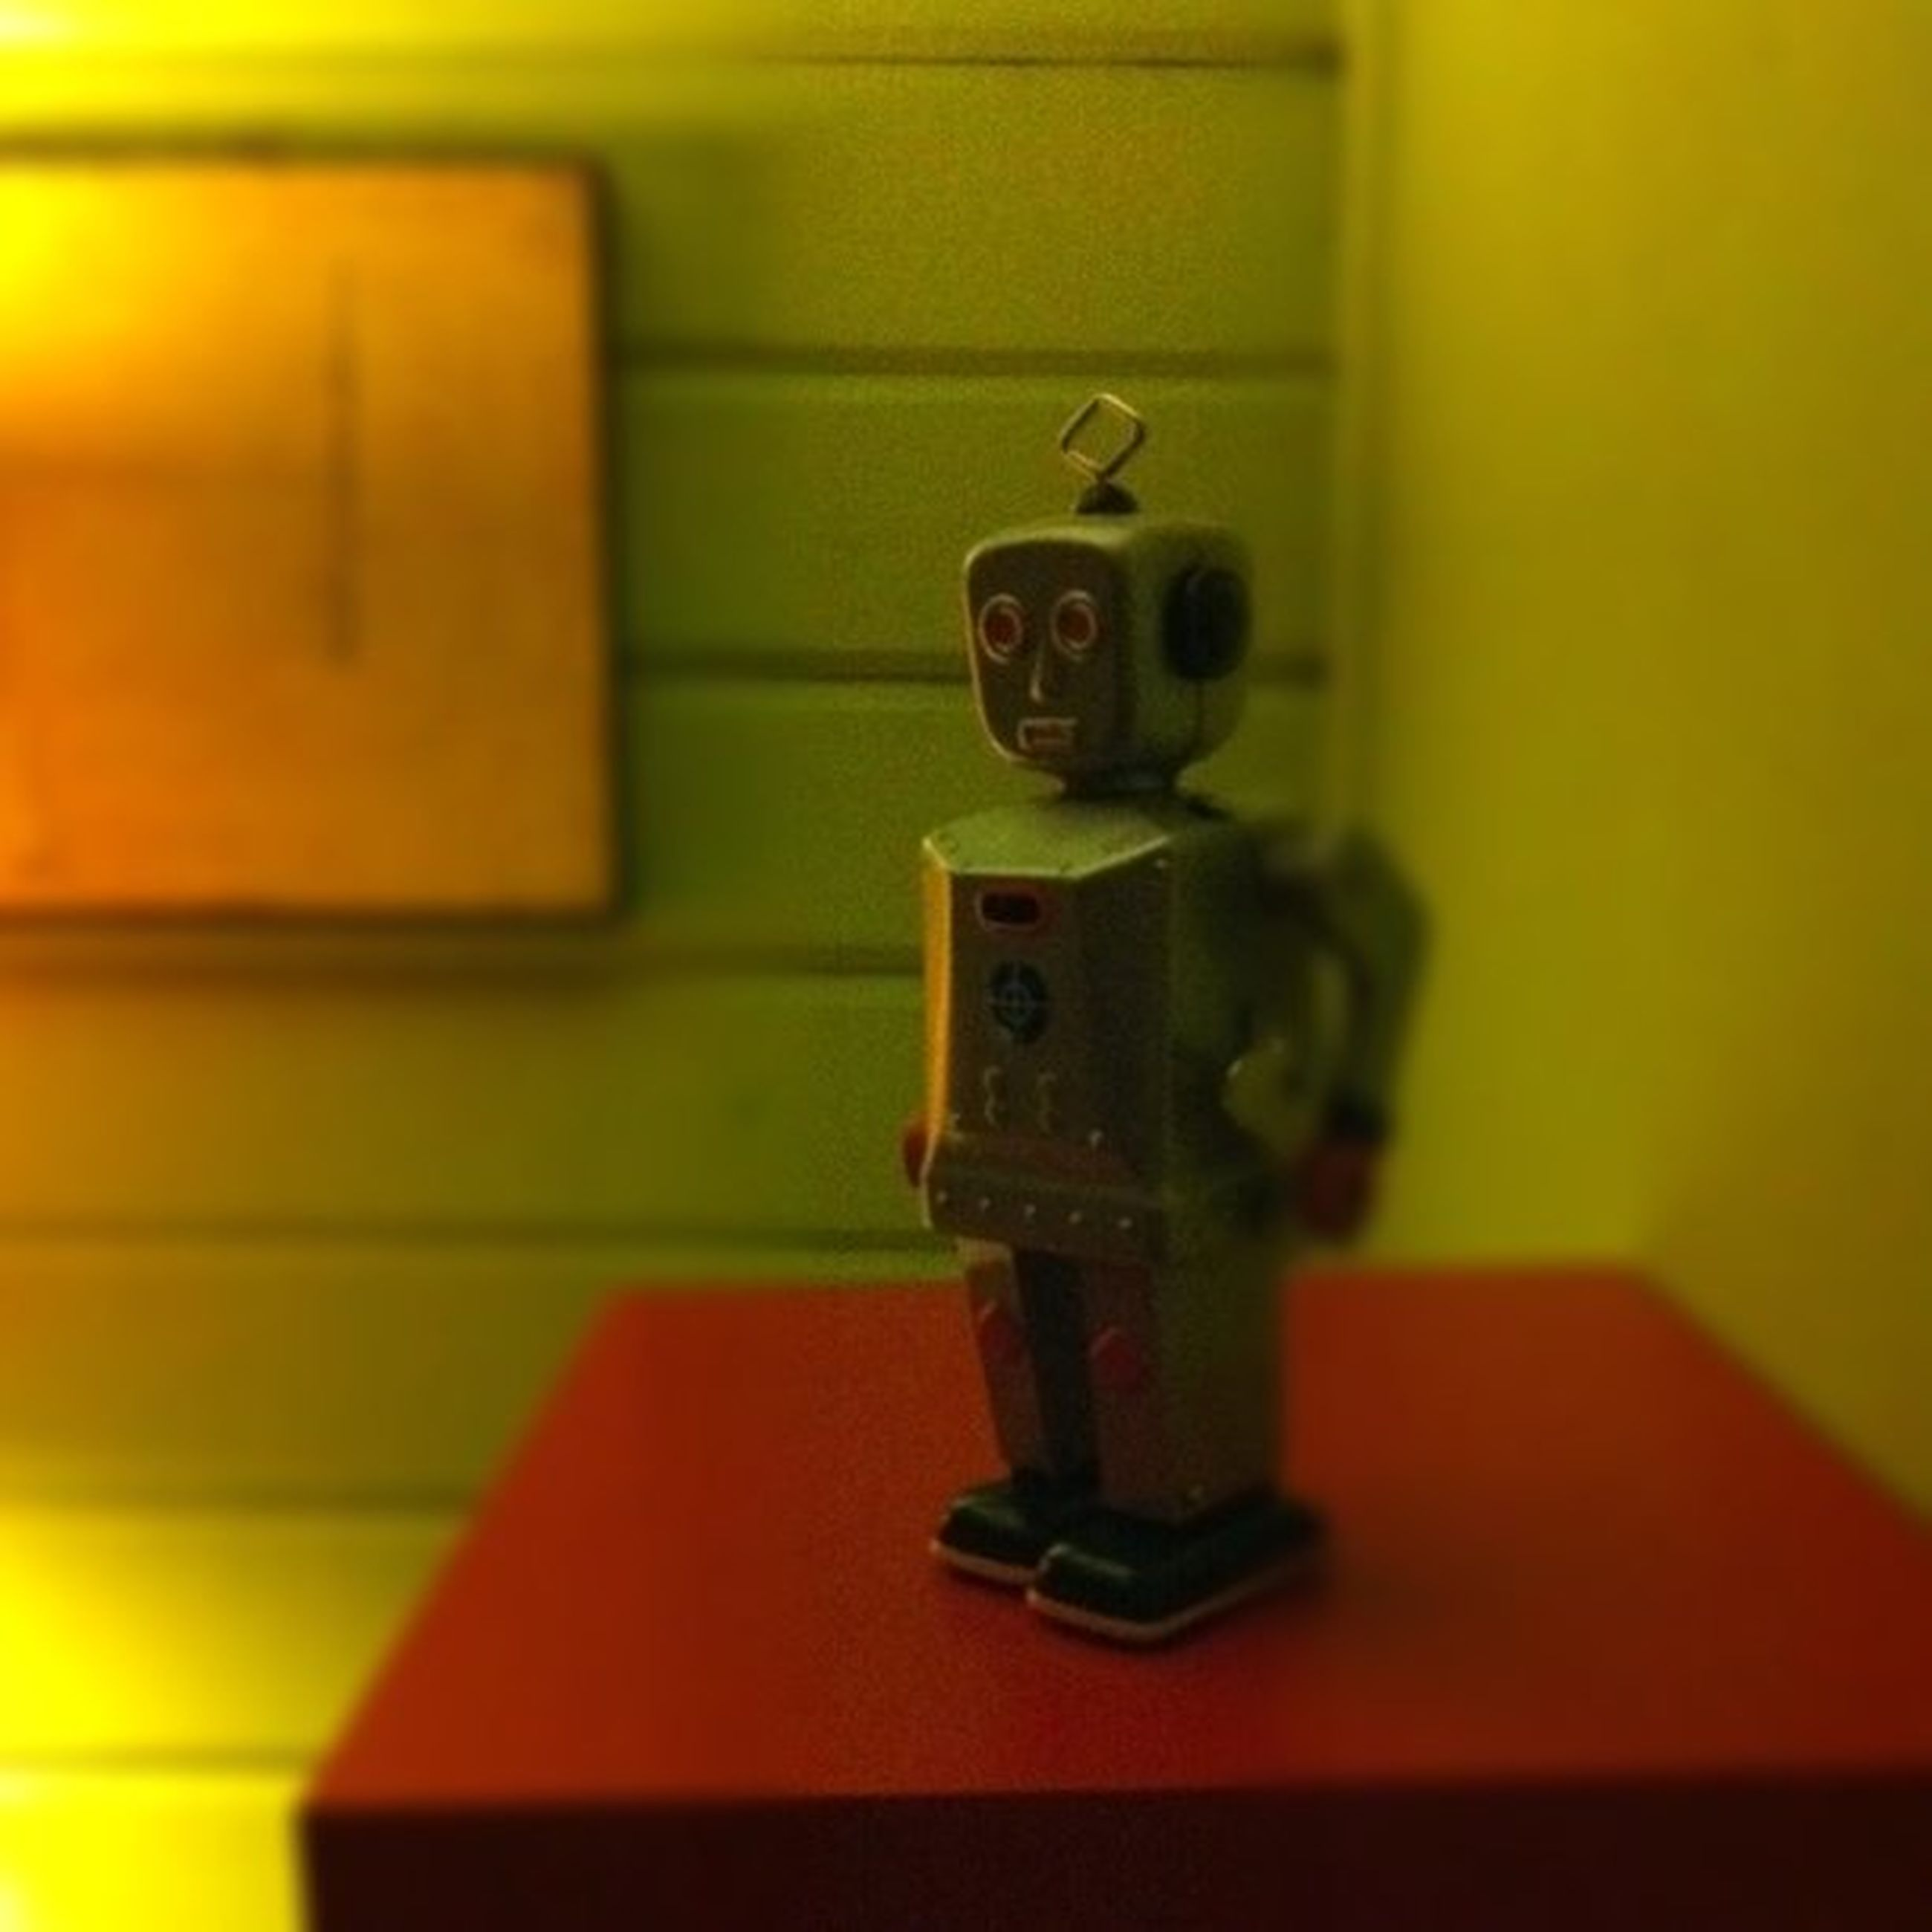 indoors, human representation, wall - building feature, art and craft, home interior, art, door, creativity, close-up, selective focus, wall, built structure, no people, focus on foreground, architecture, yellow, toy, house, figurine